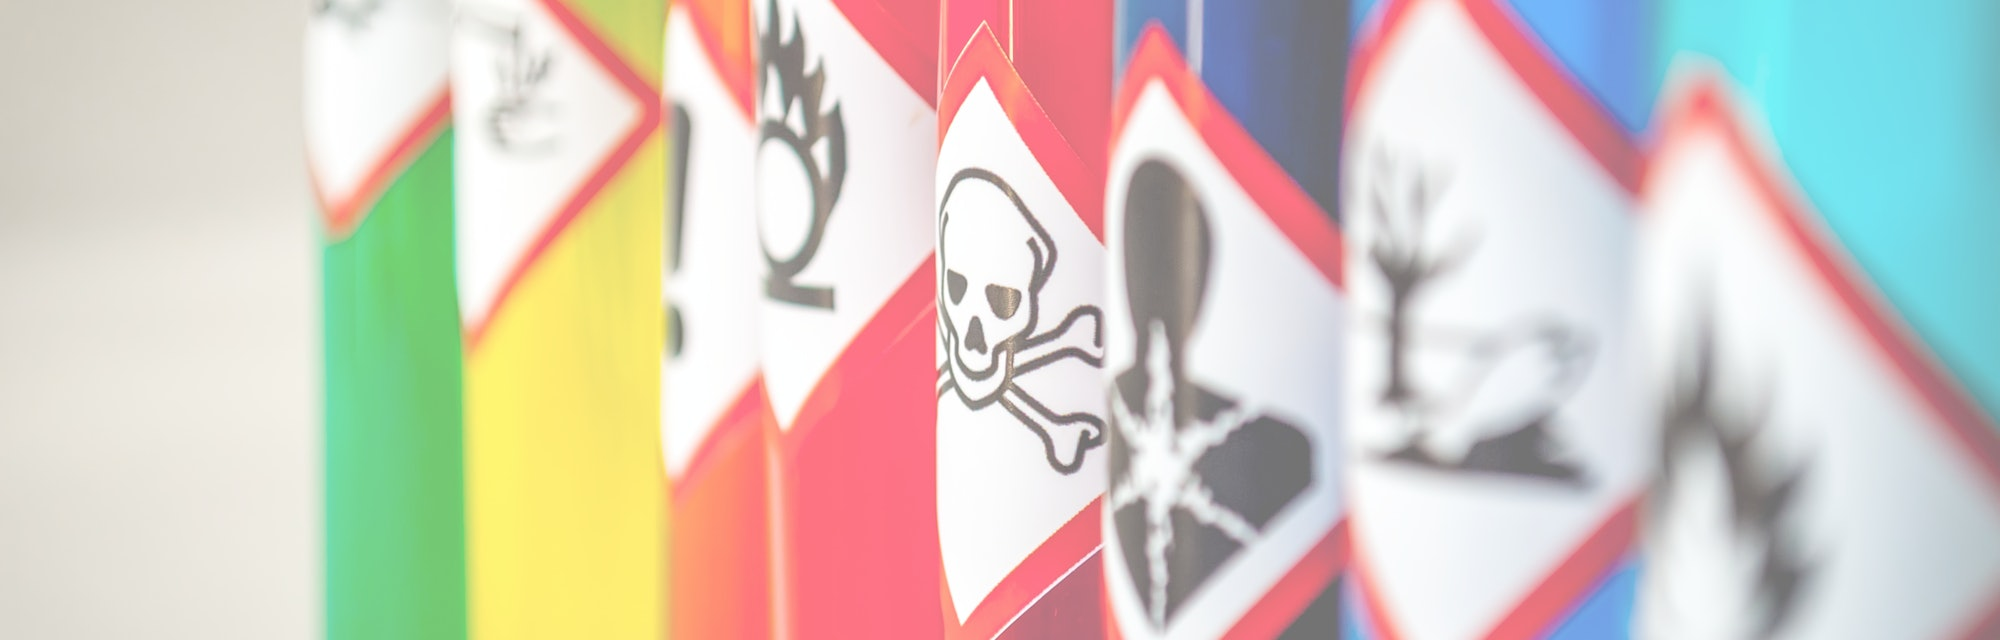 Chemical hazard pictograms Toxic focus